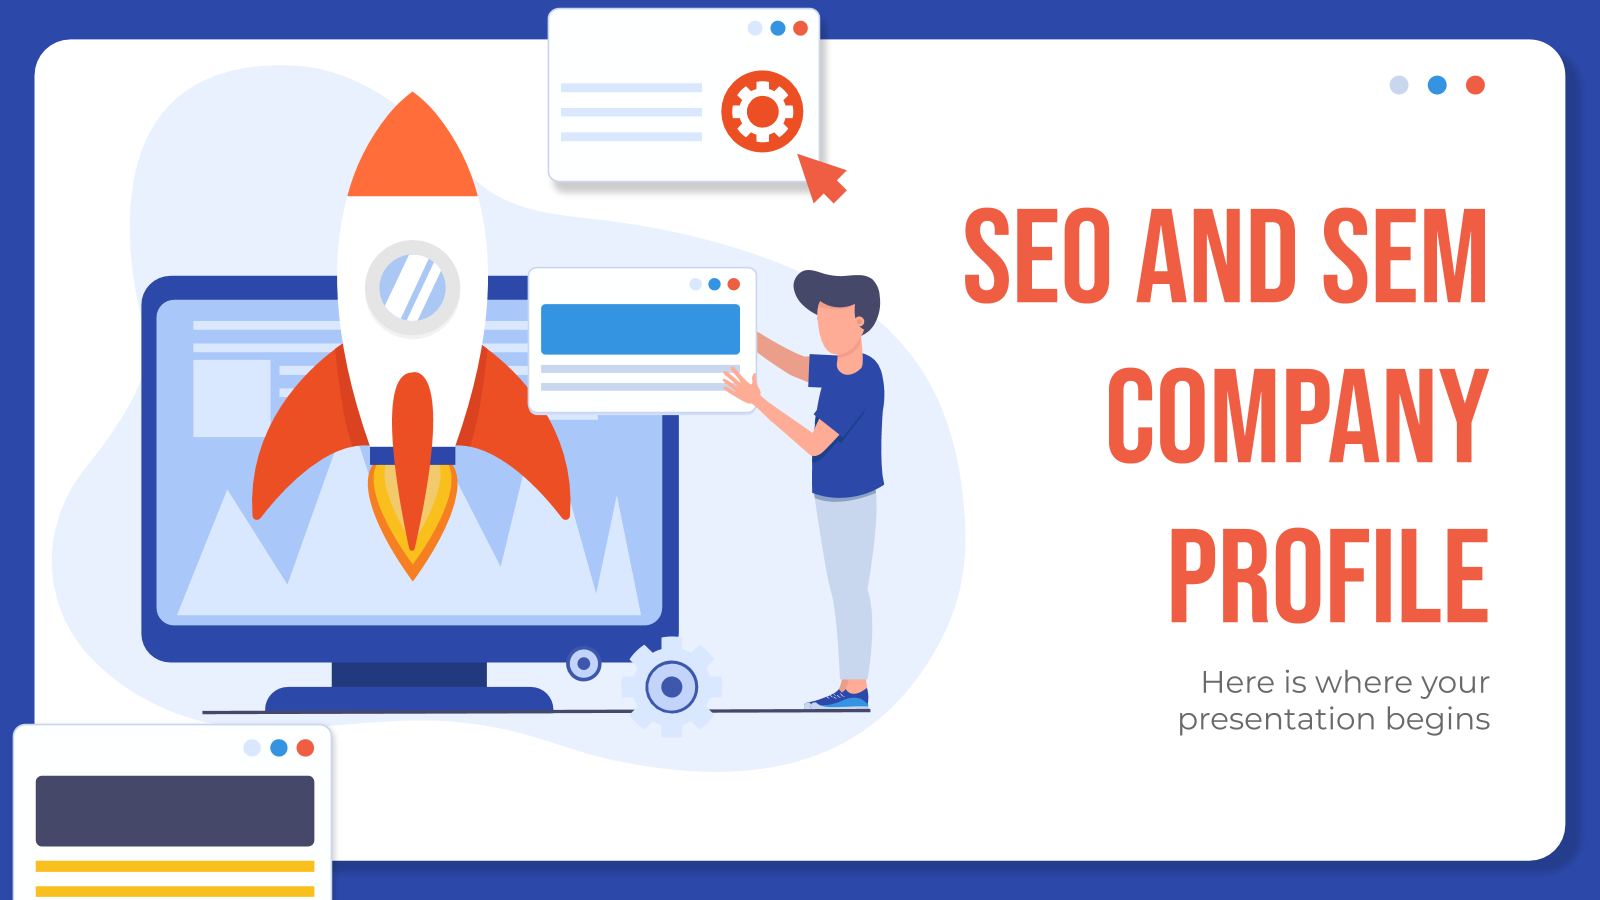 SEO and SEM Company Profile presentation template